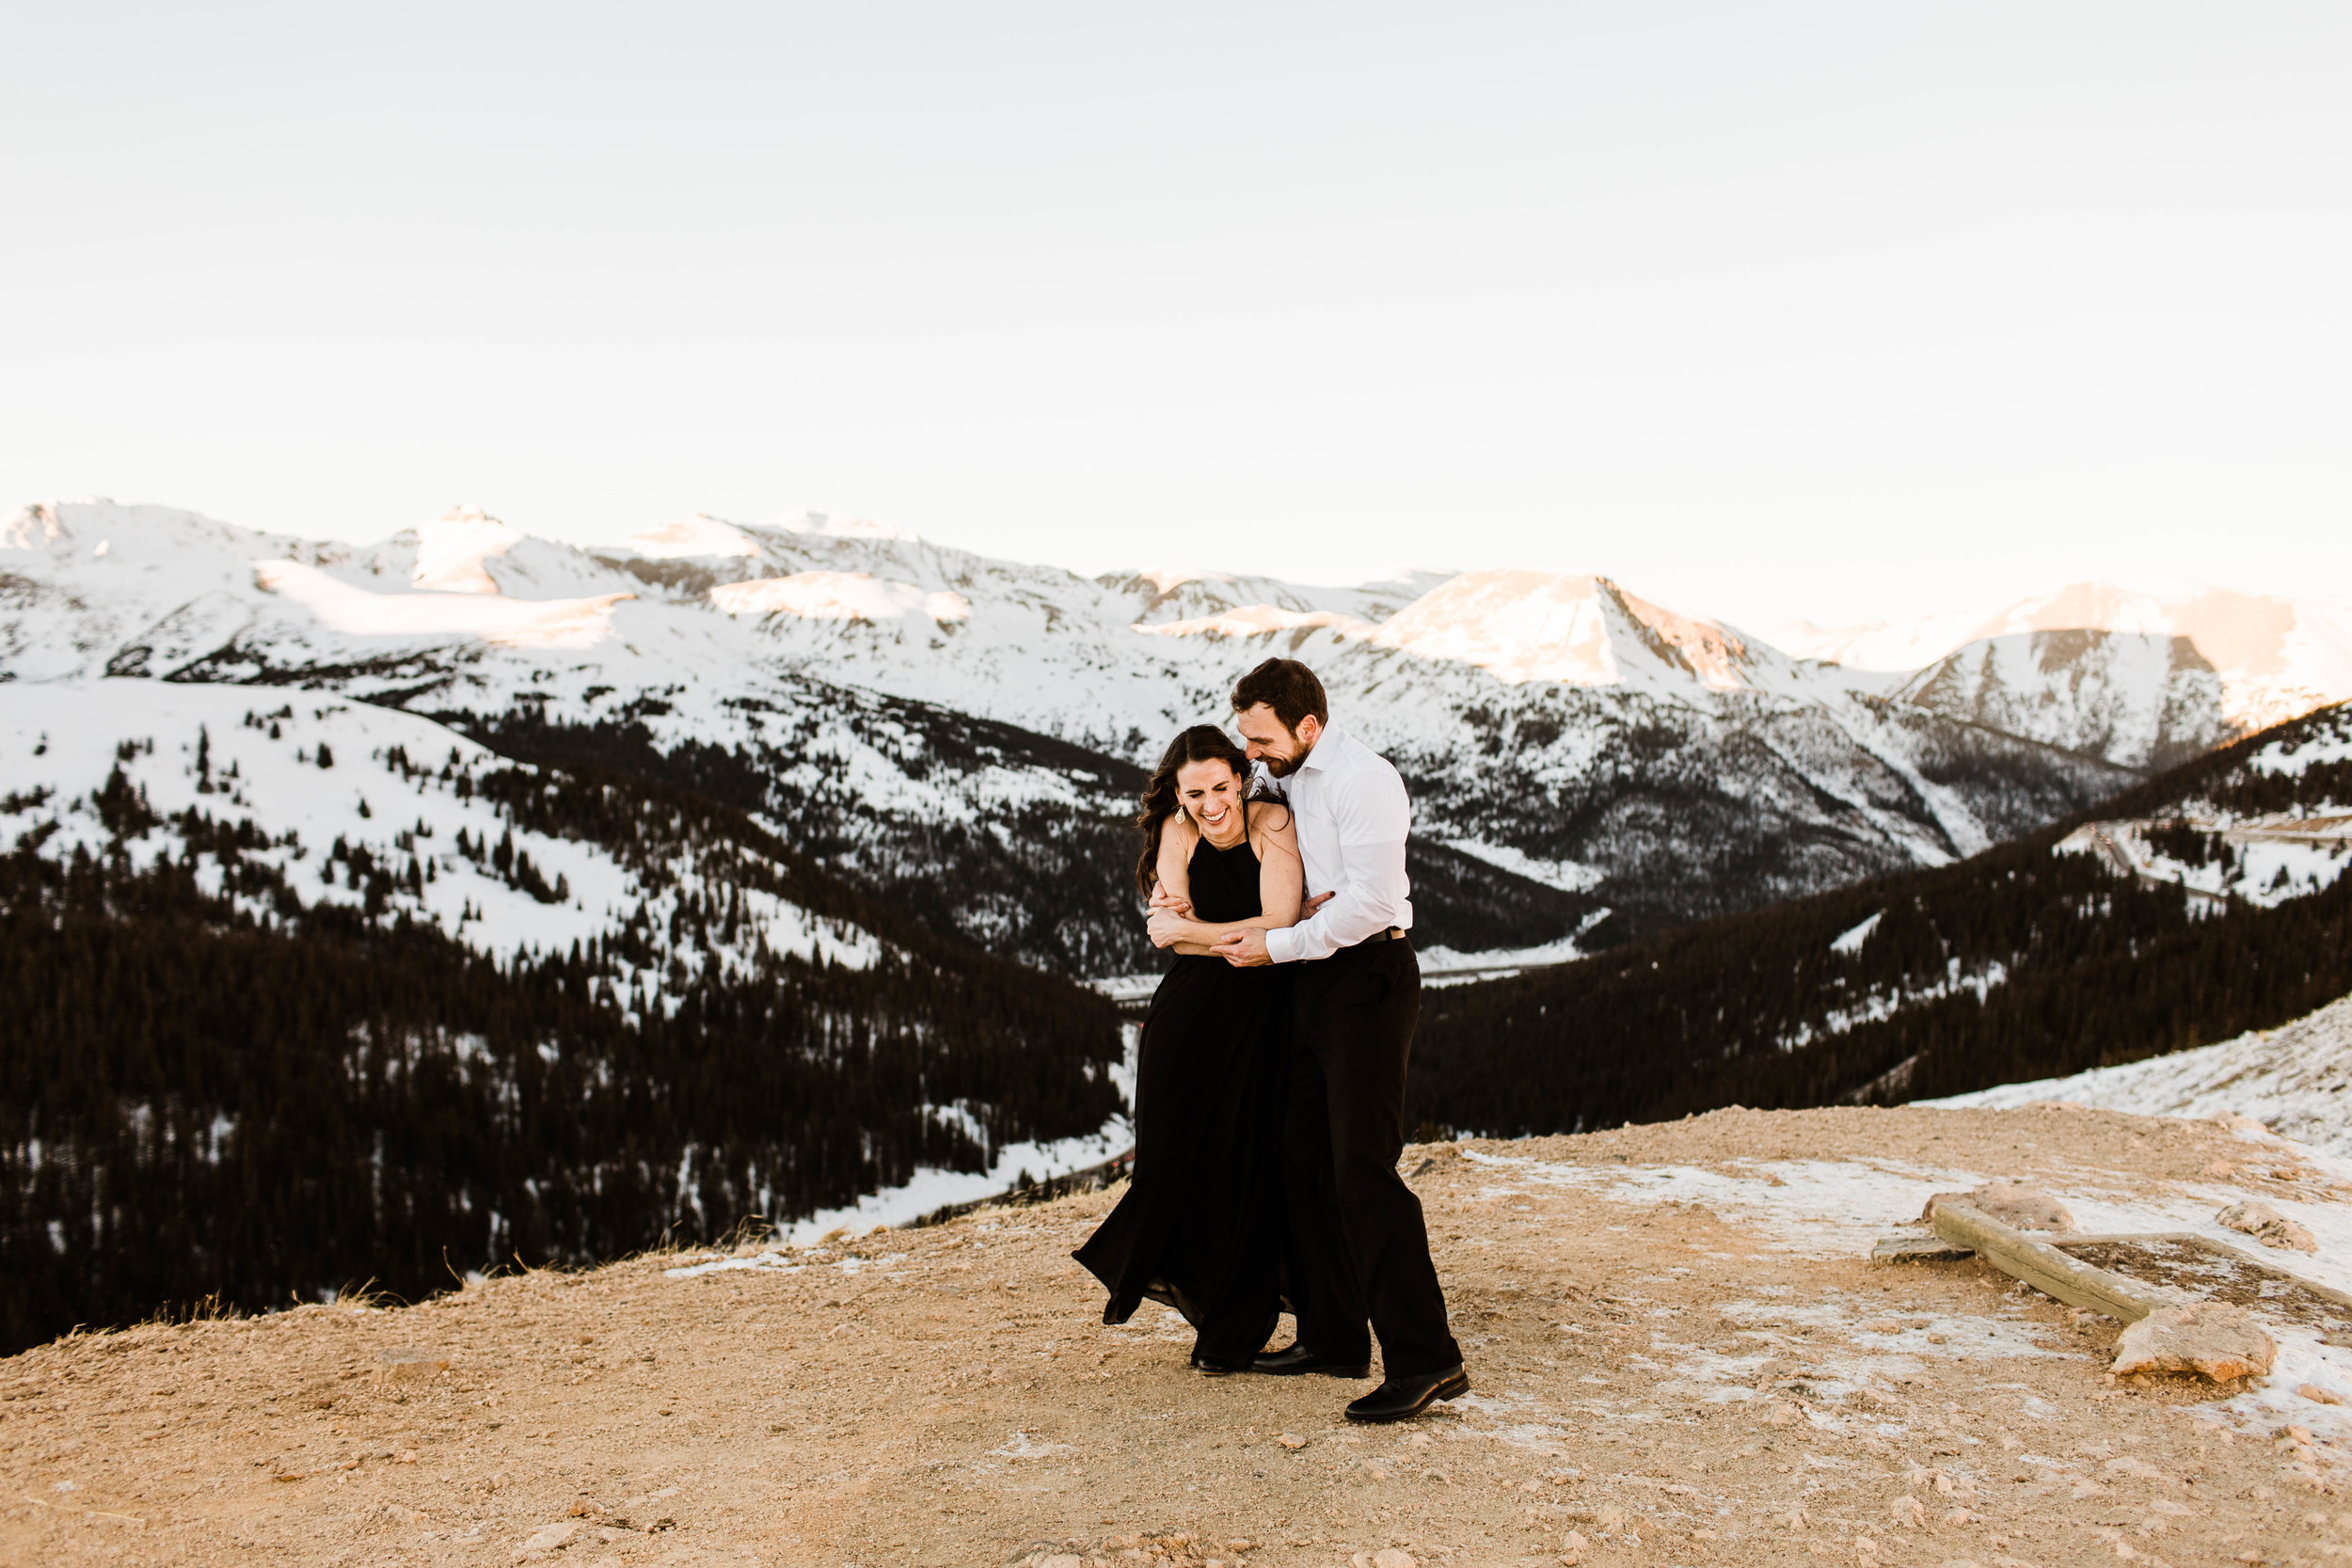 Snuggling in the snowy mountains | Colorado Elopement Photography